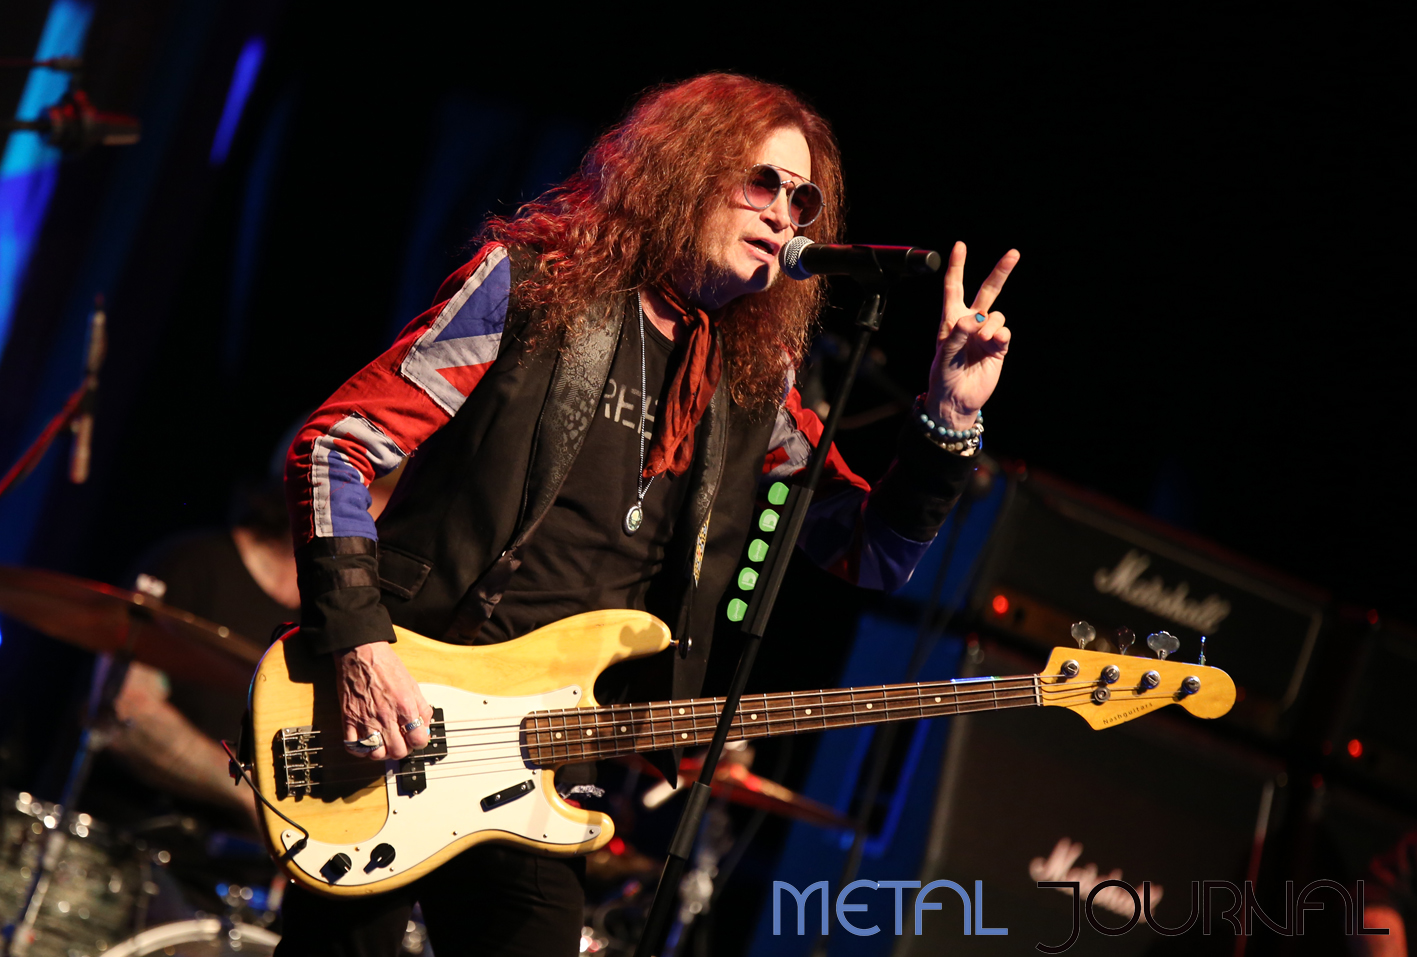 glenn hughes - metal journal pic 2